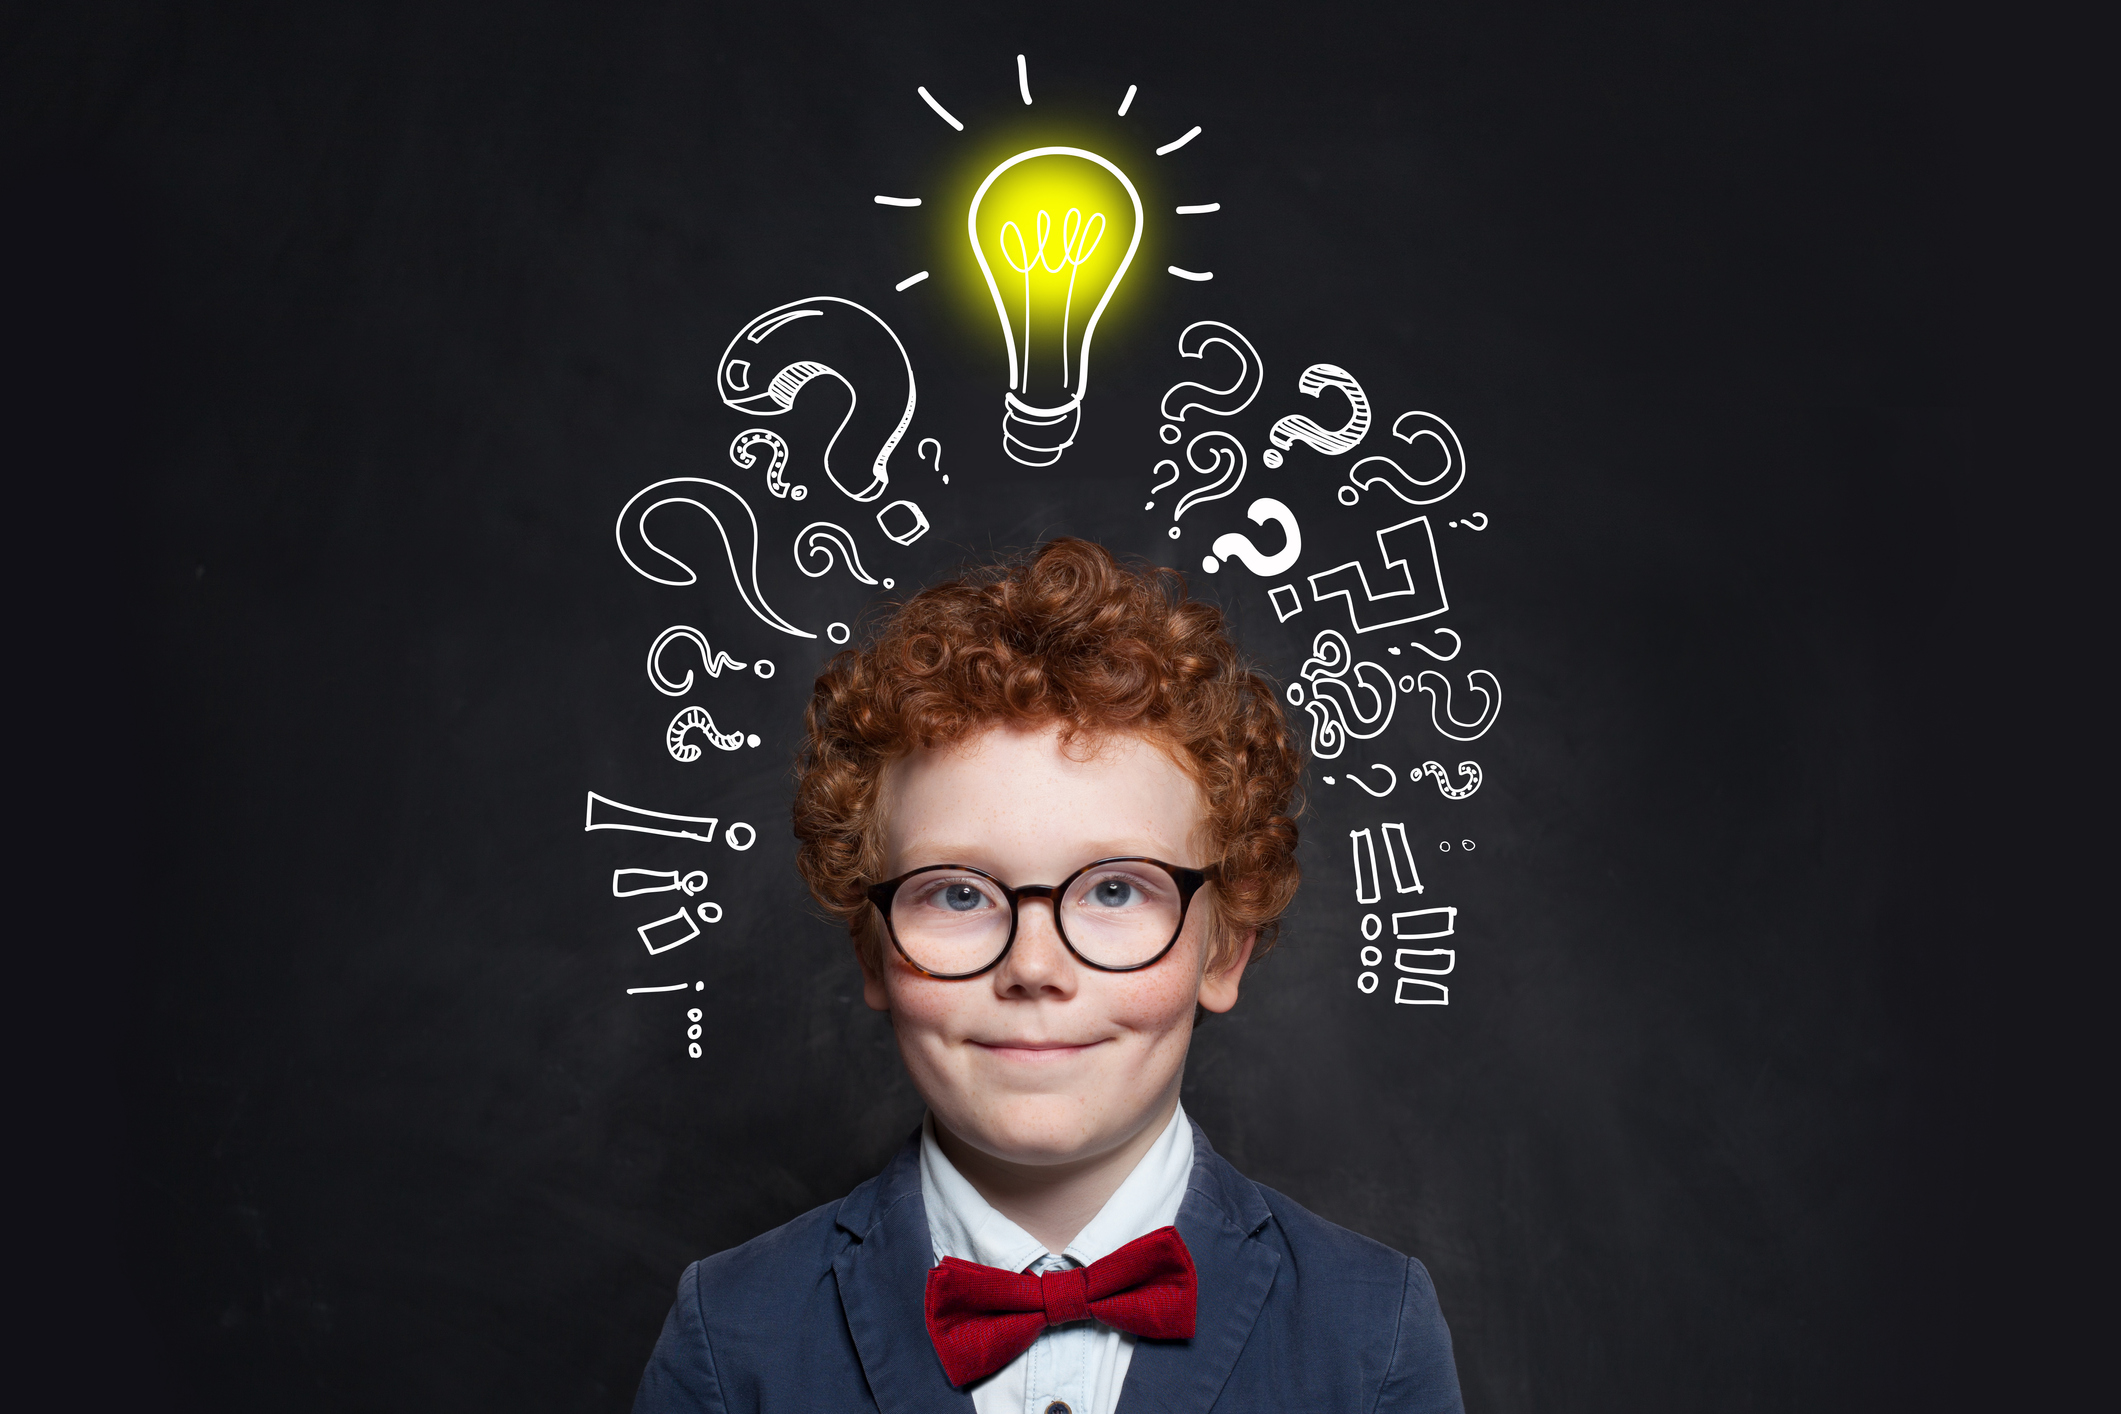 Child and lightbulb on blackboard background